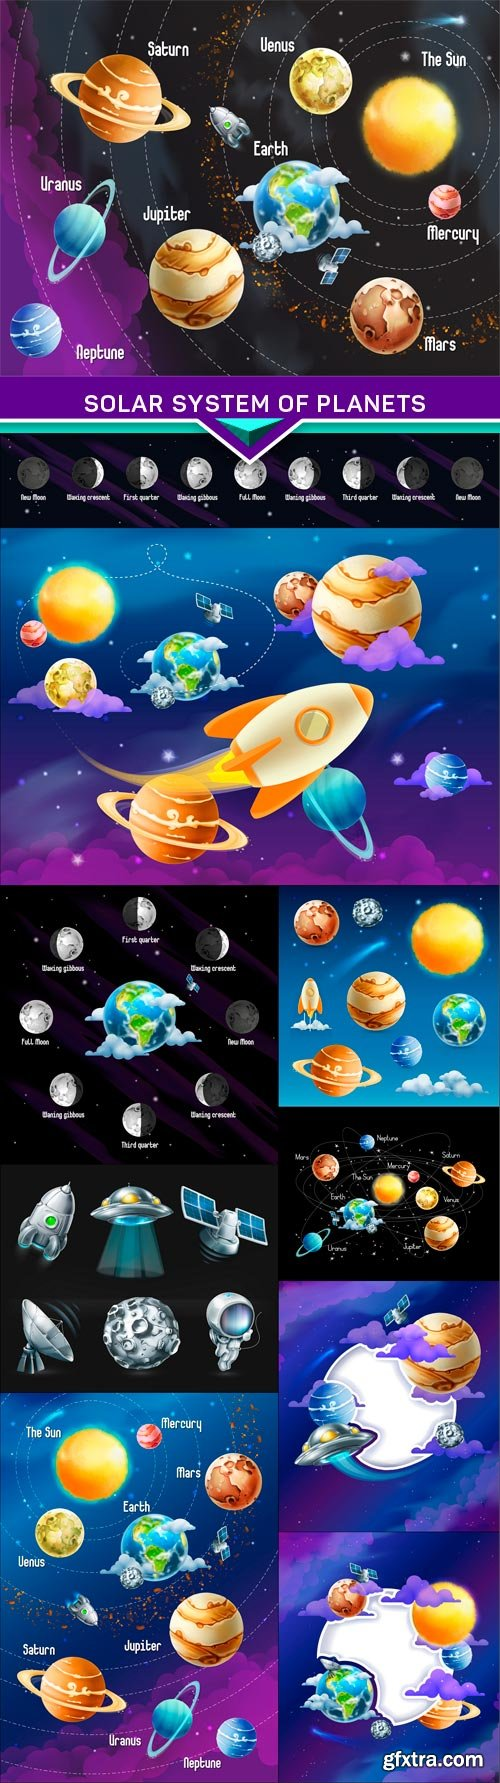 Solar system of planets 10x EPS